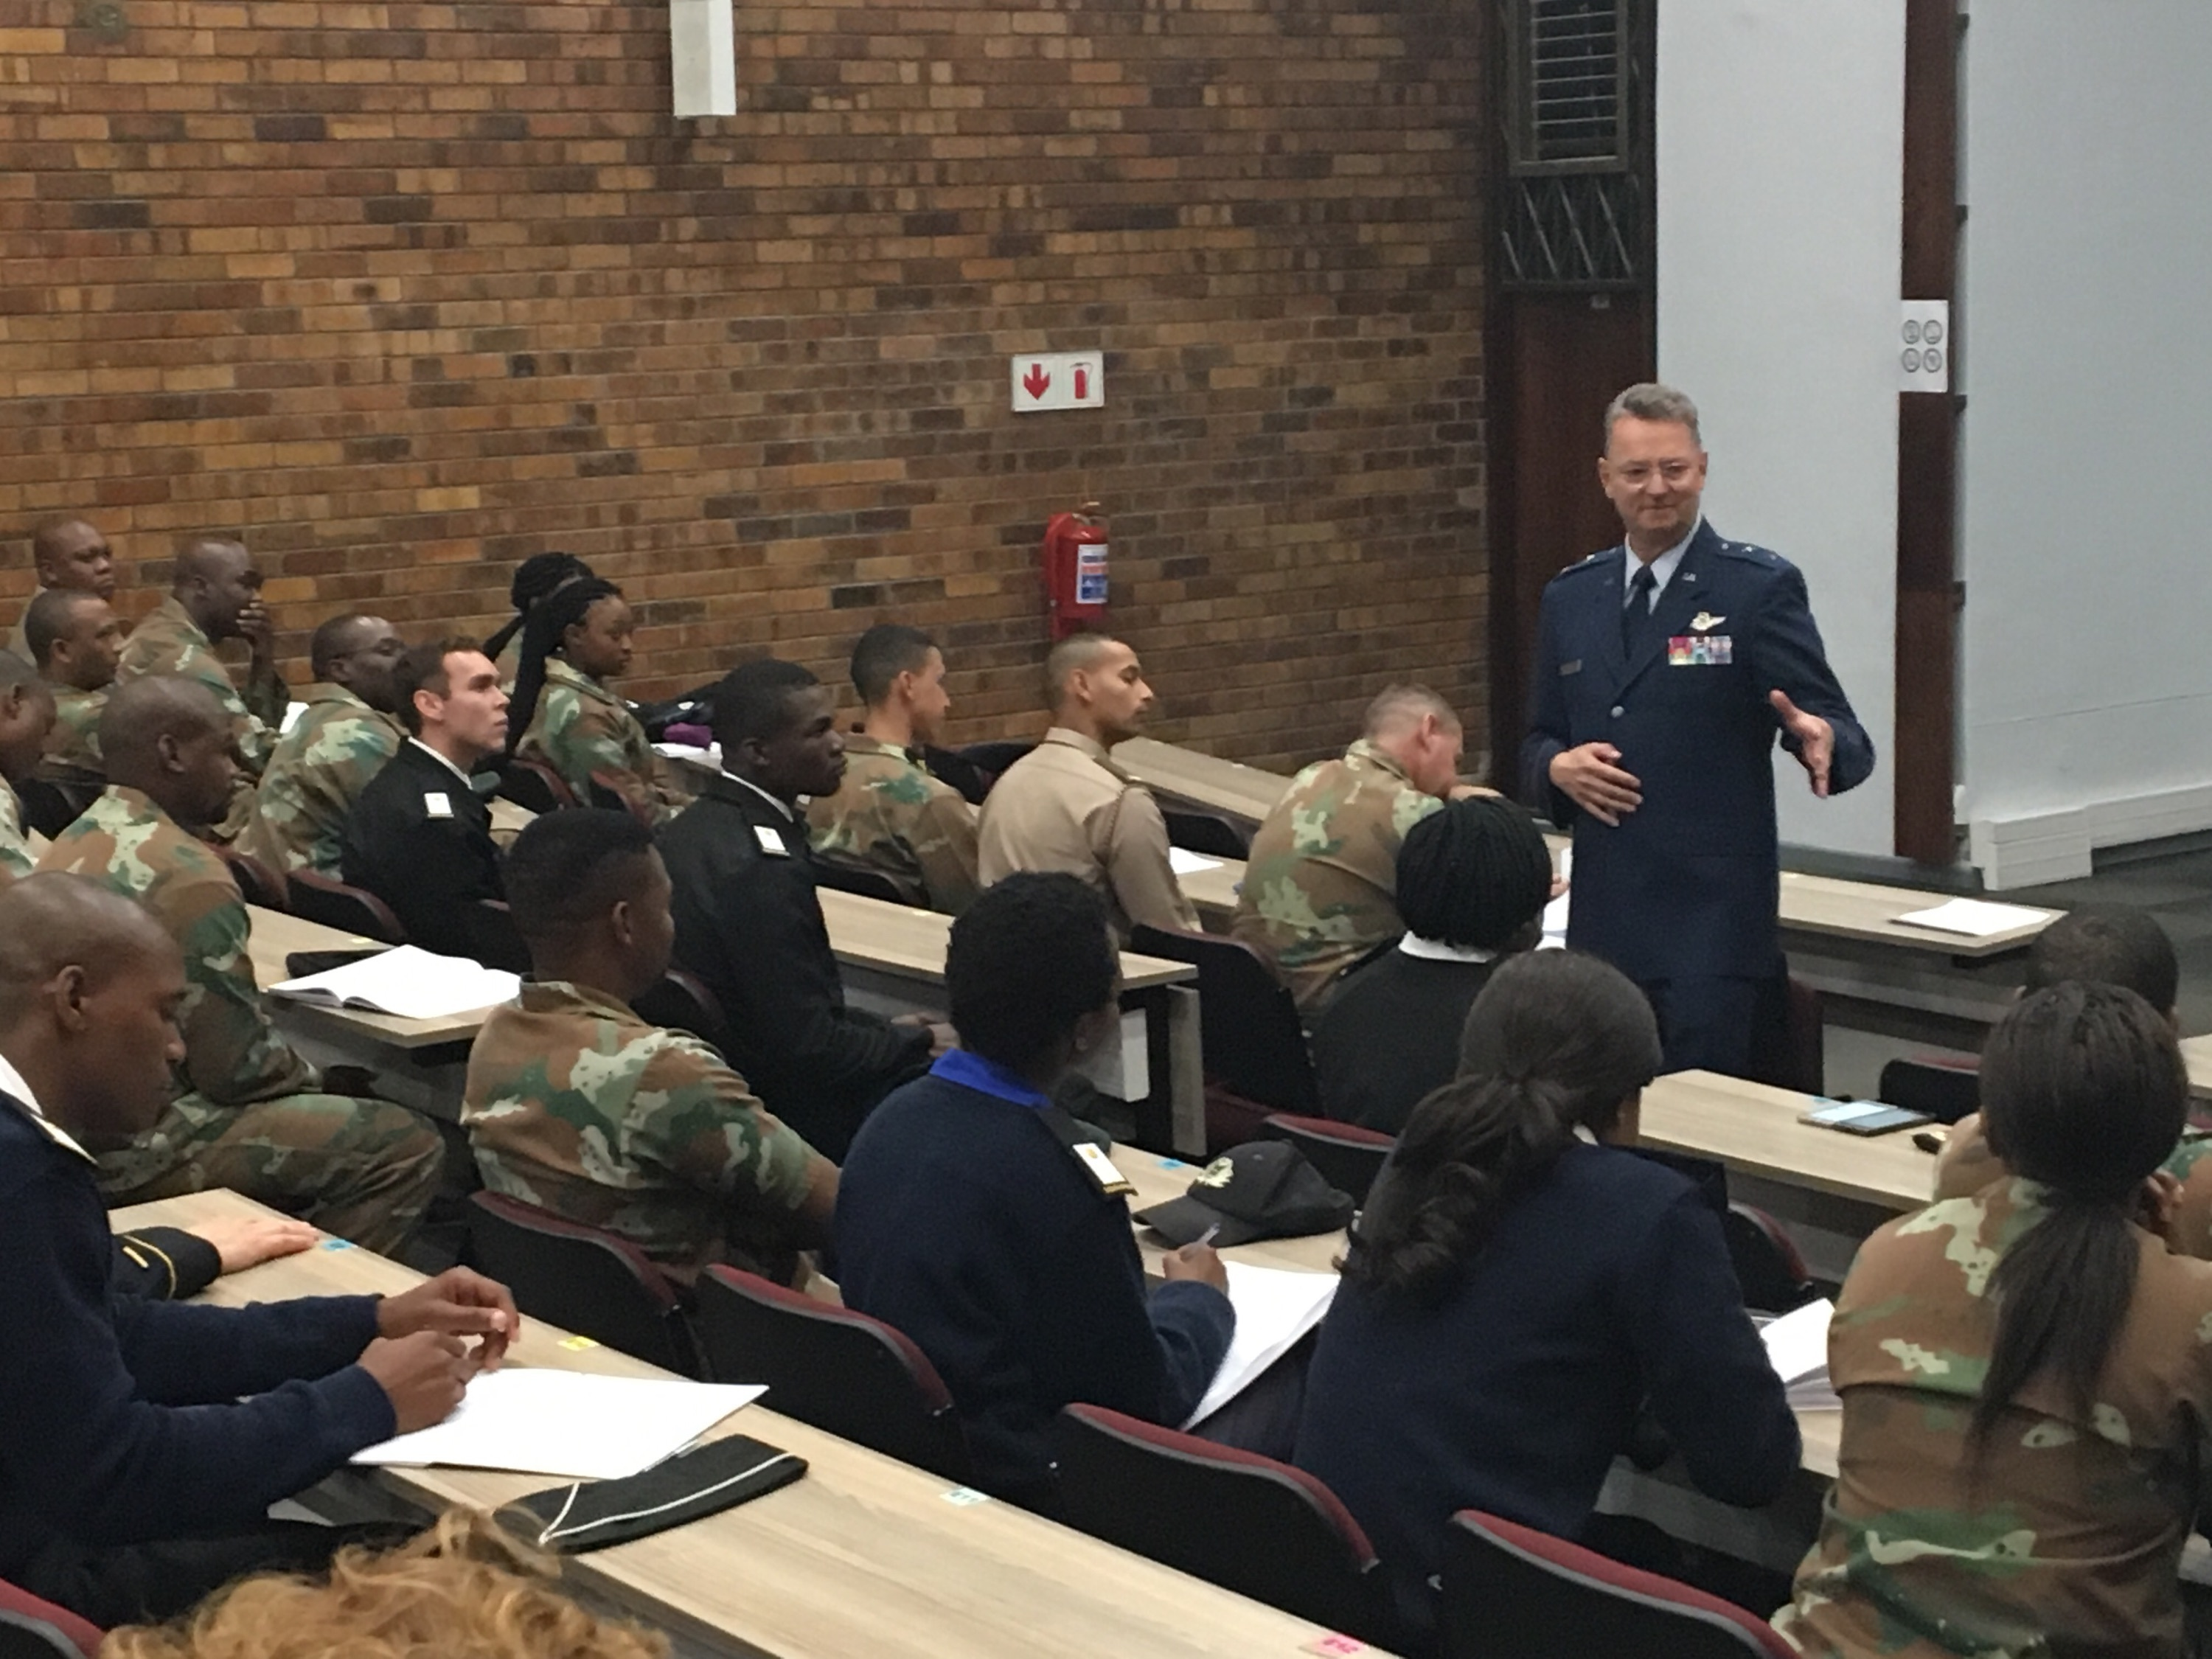 Major General Anthony German, the Adjutant General of New York, meets with cadets at the Military Academy of South Africa in Saldanha,  Western Cape Province, South Africa on May 8, 2018. German was speaking at the Academy as part of an exchange program executed as part of the New York National Guard State Partnership Program relationship with the South African National Defense Force. (U.S. Army National Guard photo by Major Al Philips.)